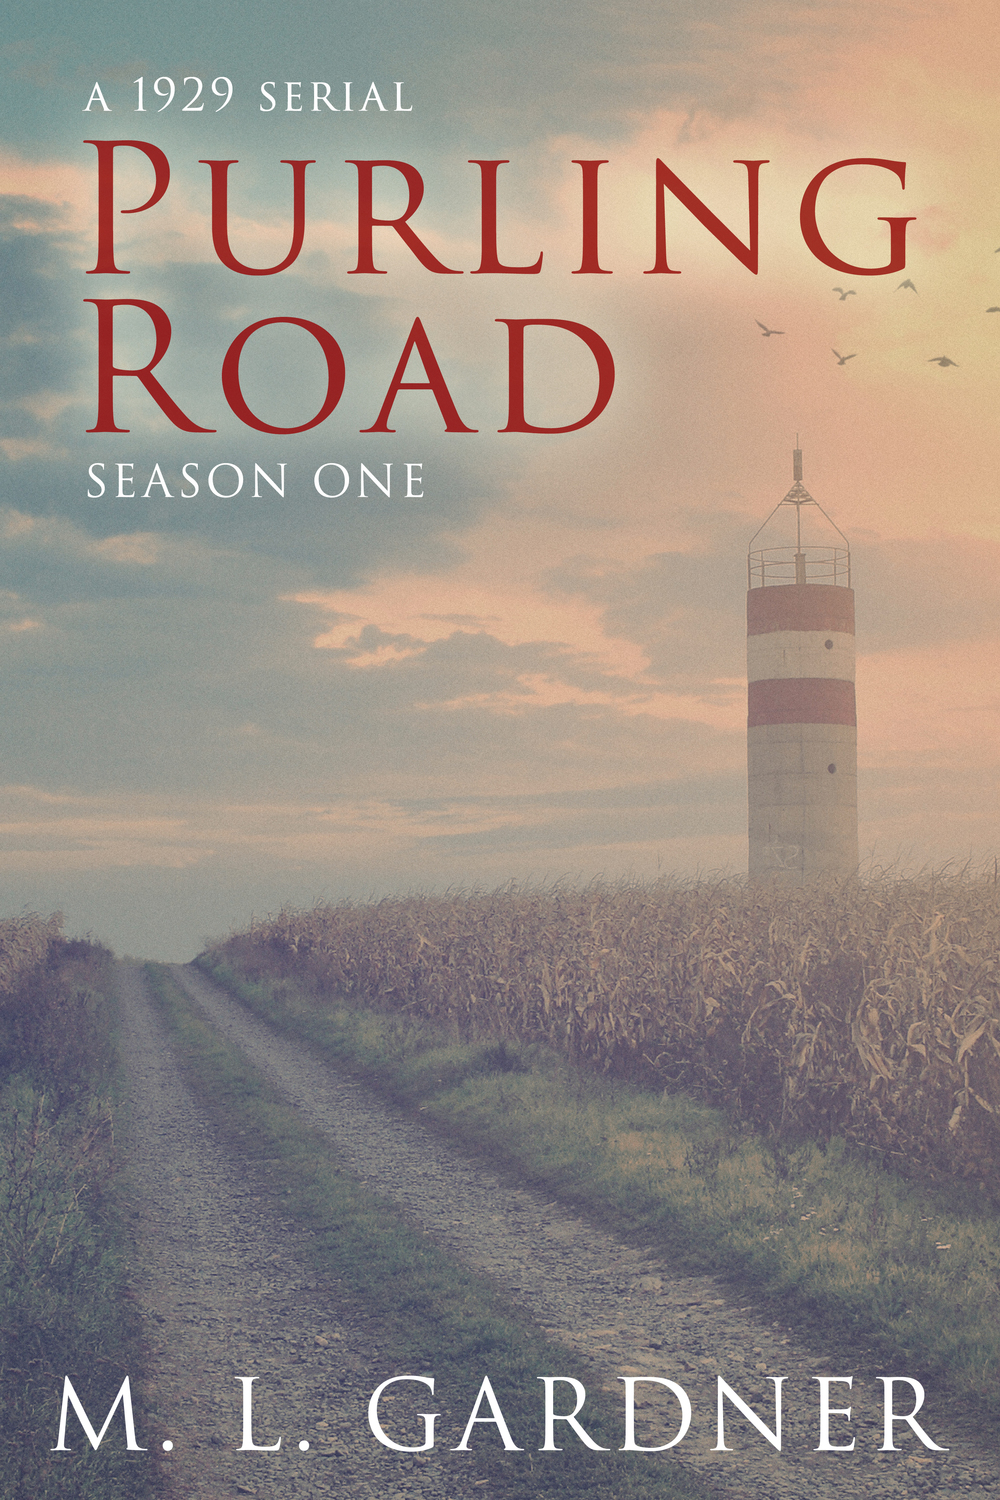 Purling Road: Season One (the compilation) coming to Amazon.com soon.